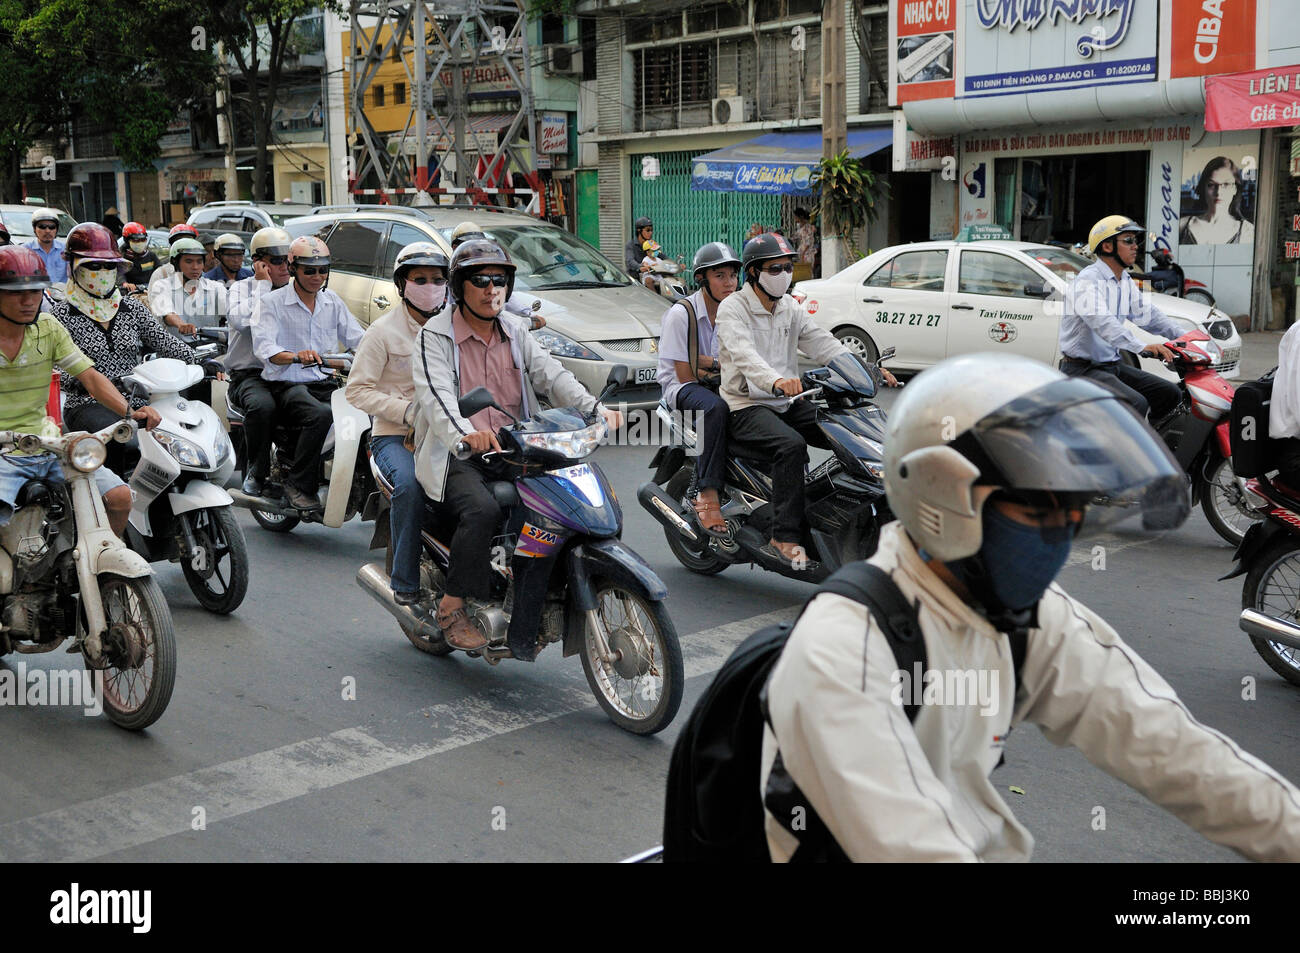 Motorcycles, mopeds in traffic chaos, traffic in Ho Chi Minh City, Saigon, Vietnam, Southeast Asia - Stock Image